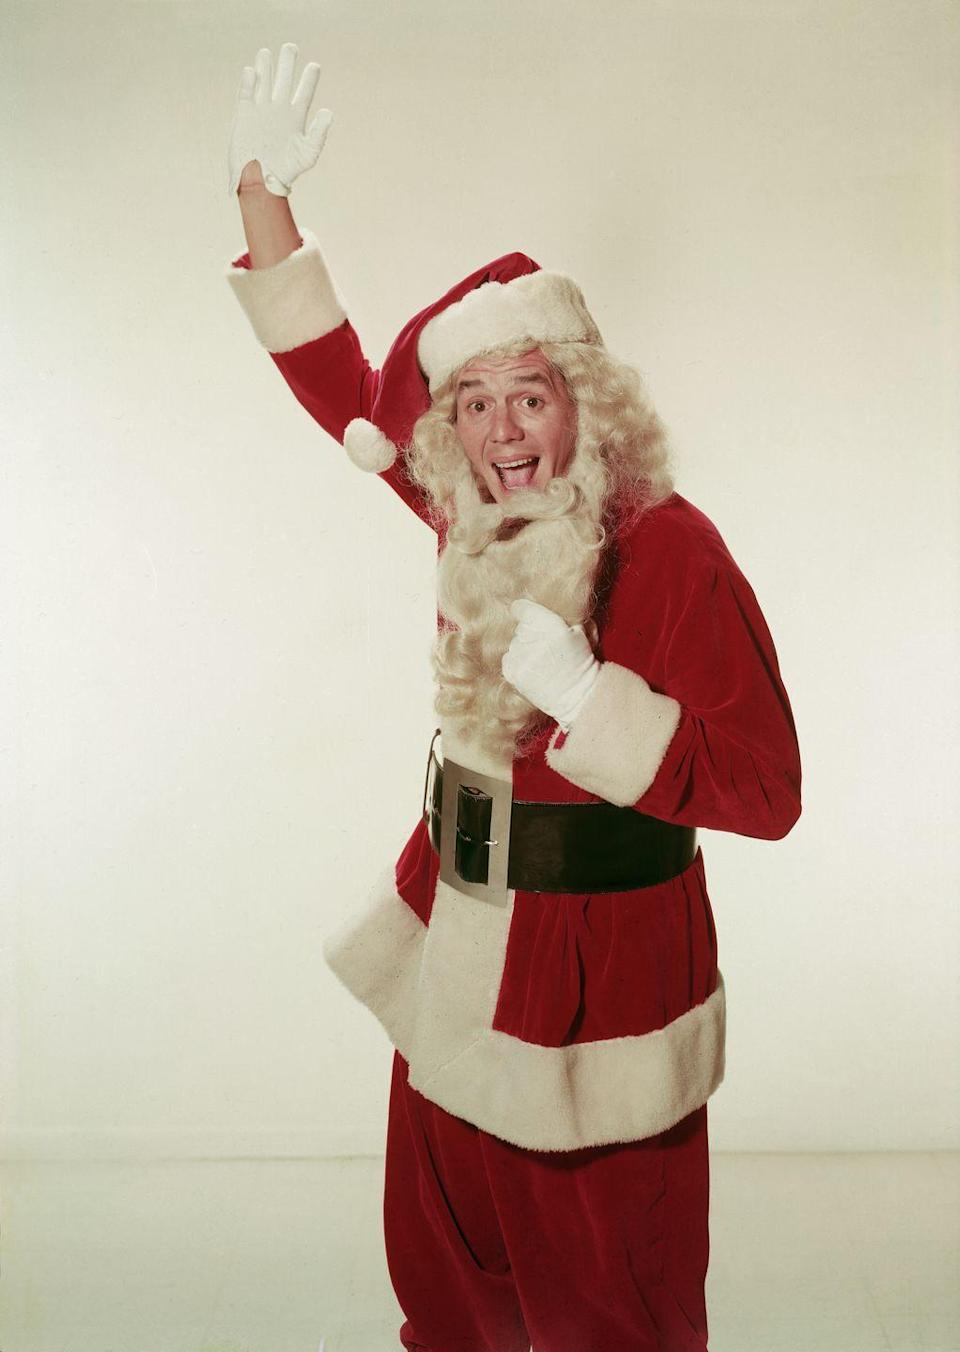 <p>The <em>I Love Lucy </em>star got into the holiday spirit by dressing like Santa in 1955. The Cuban musician and actor even gave the camera a wave, revealing his true identity to fans. </p>